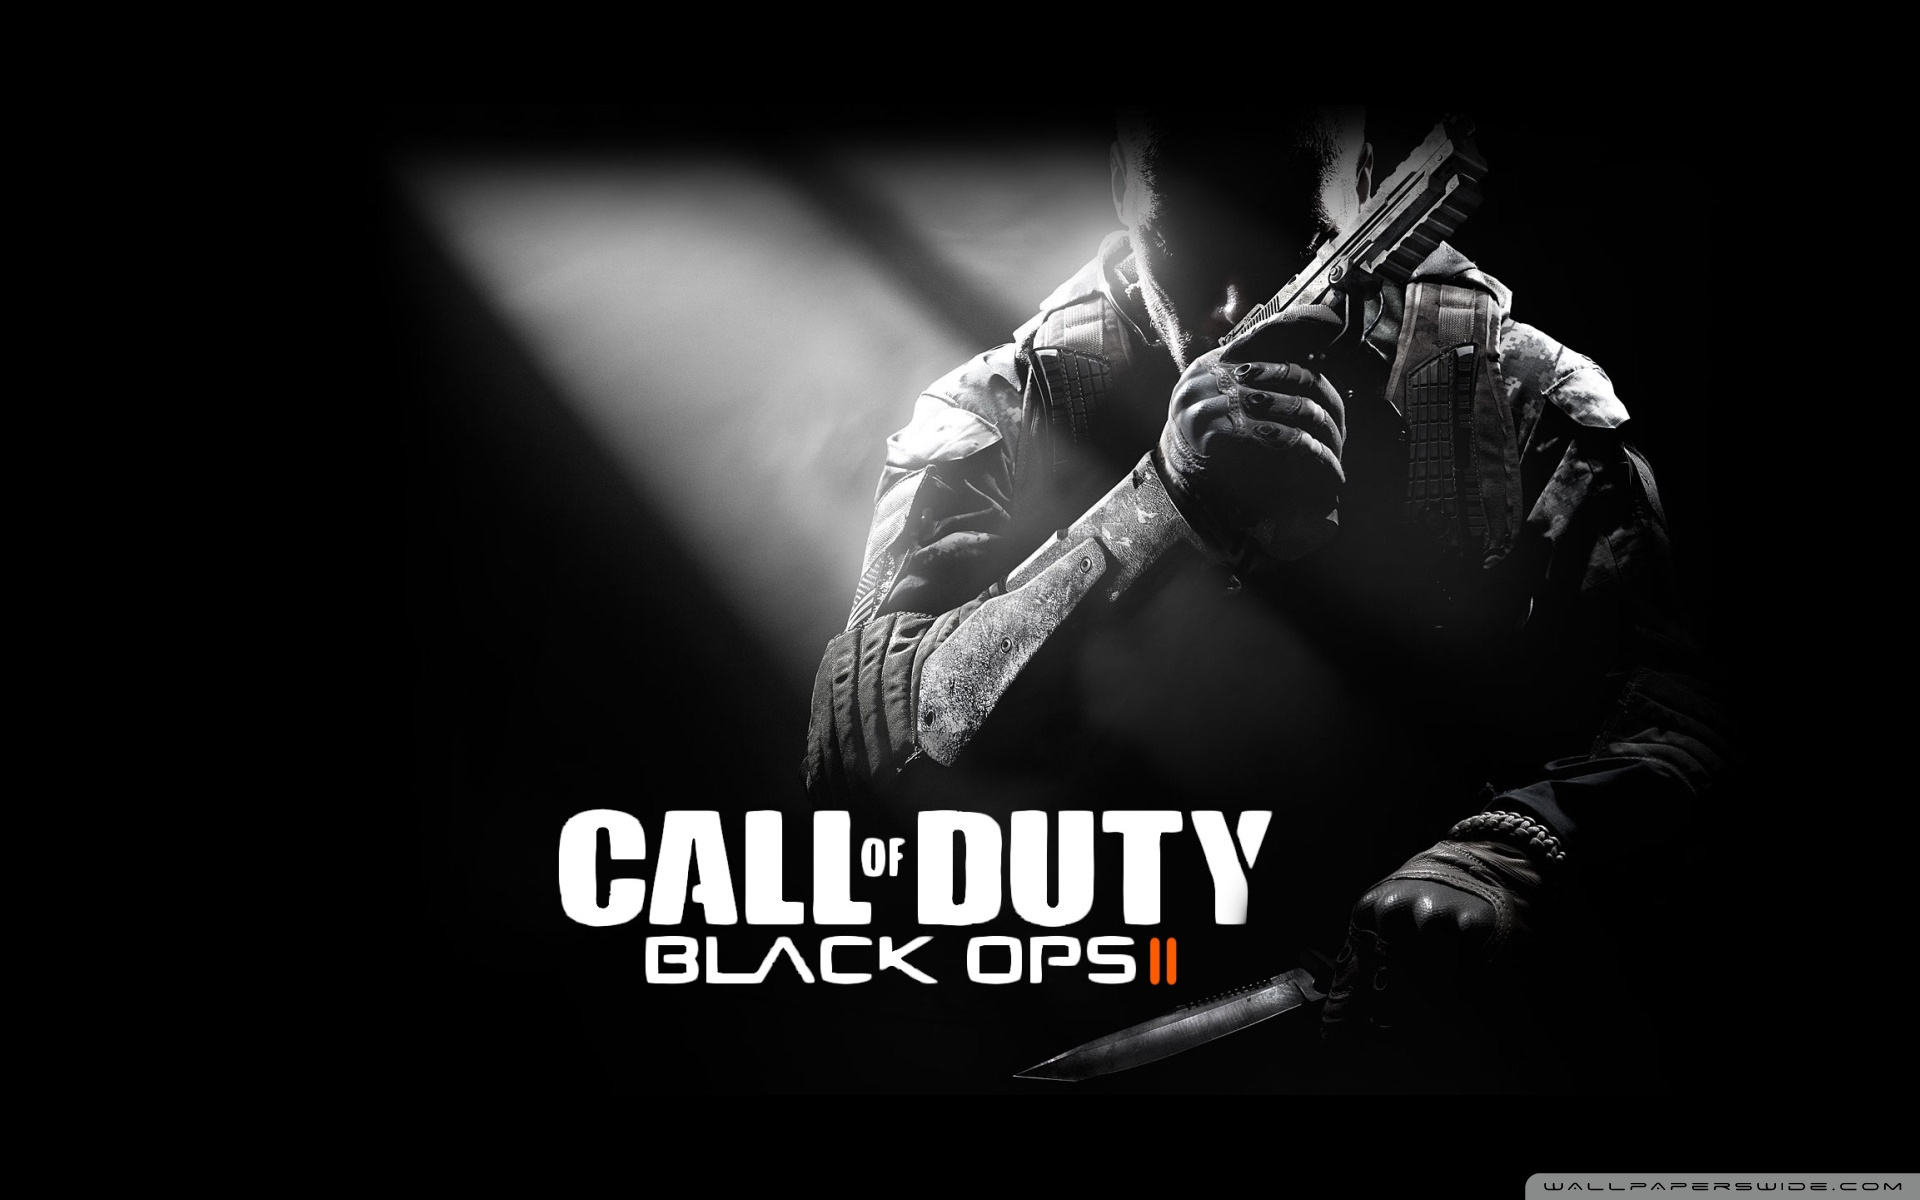 WallpapersWidecom Call Of Duty HD Desktop Wallpapers for 4K 1920x1200